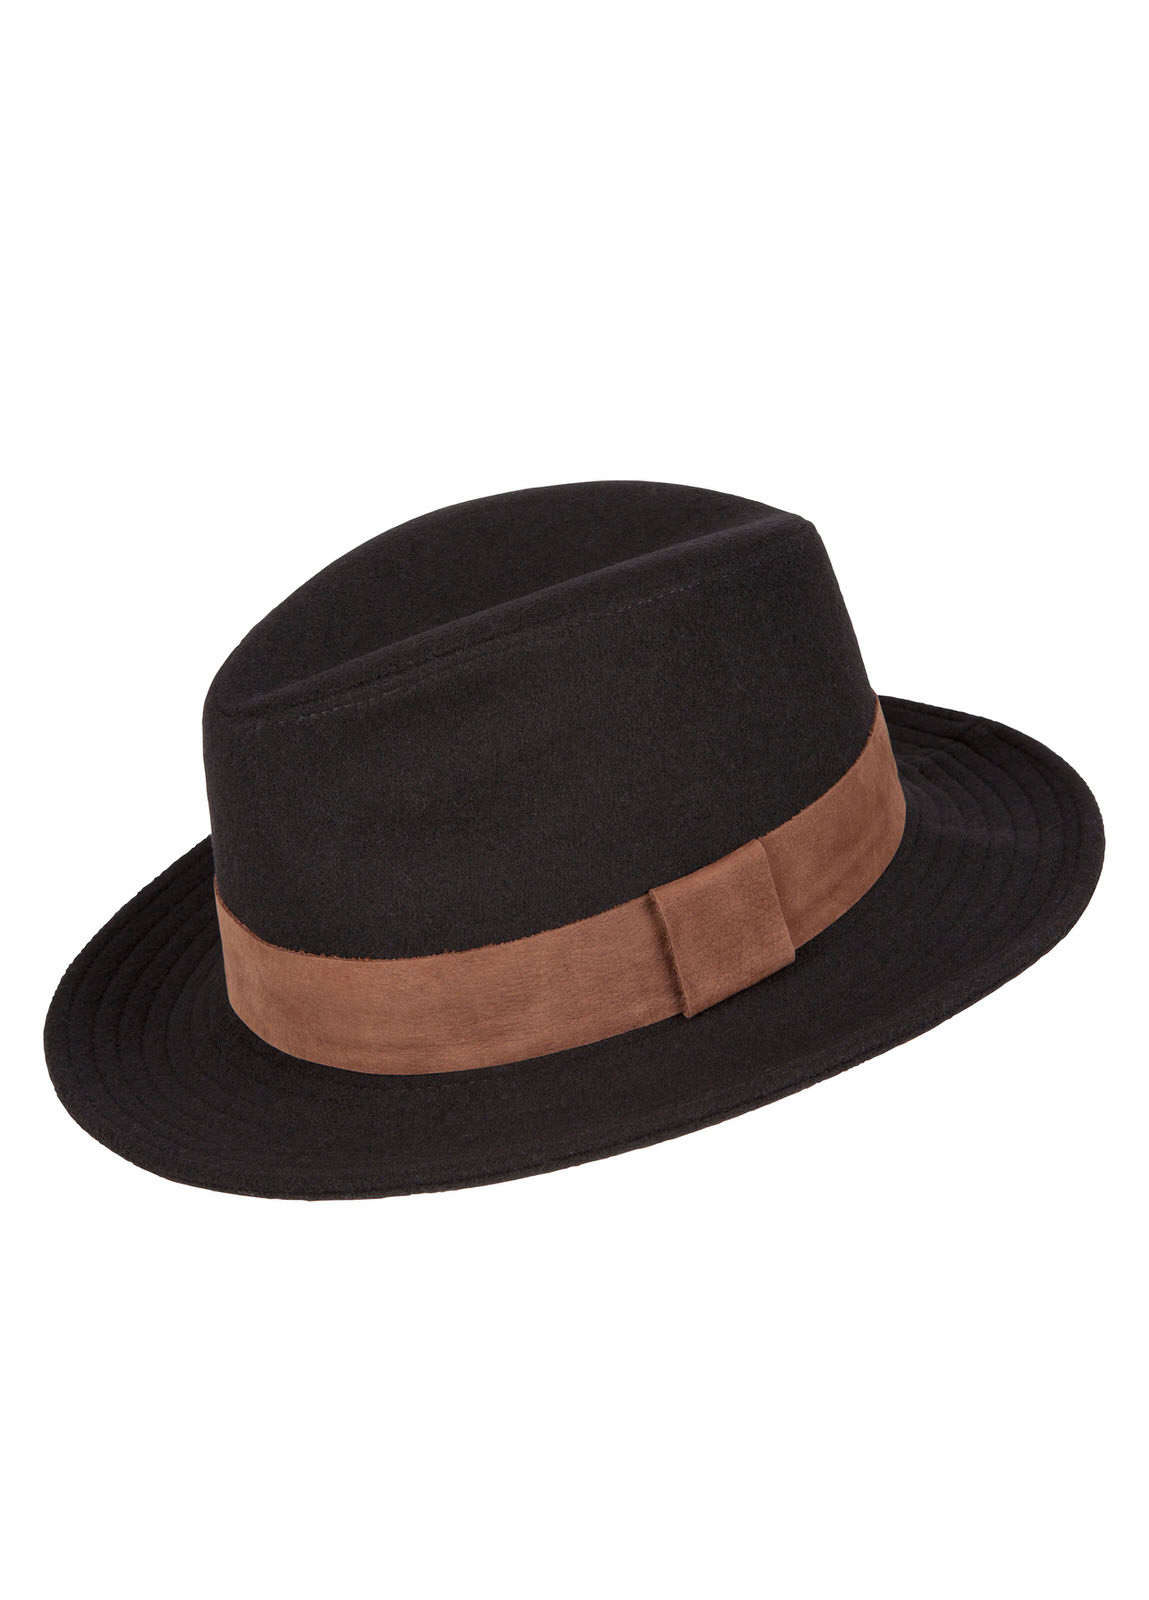 Rathowen_Hat_Black_Image_1